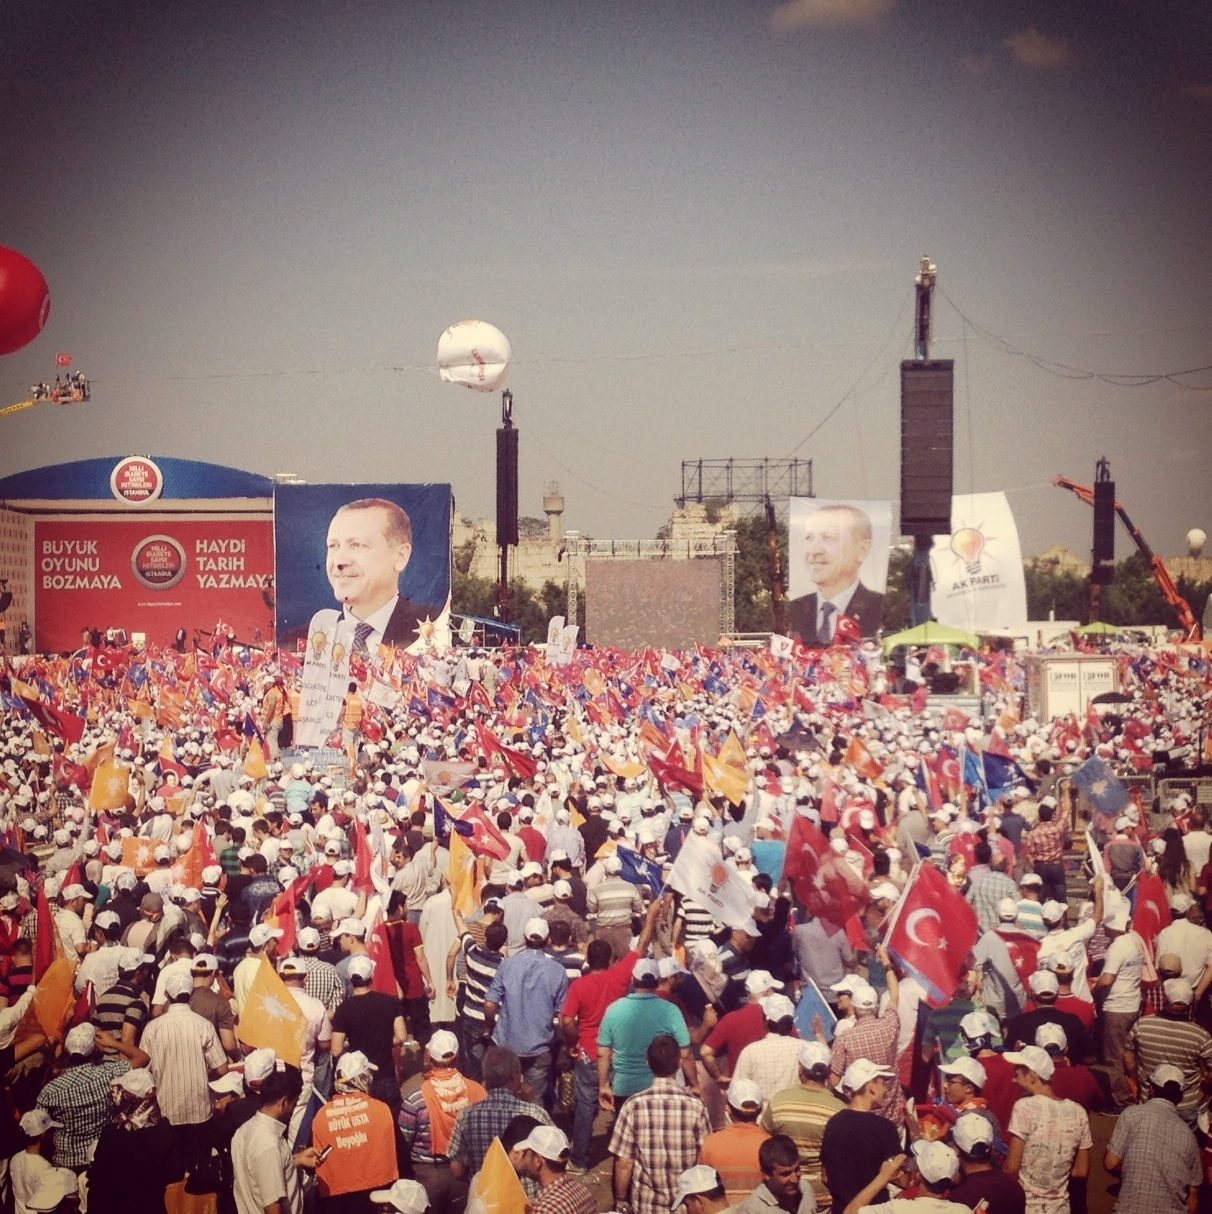 The platform. Massive images and banners of PM Erdogan were everywhere.